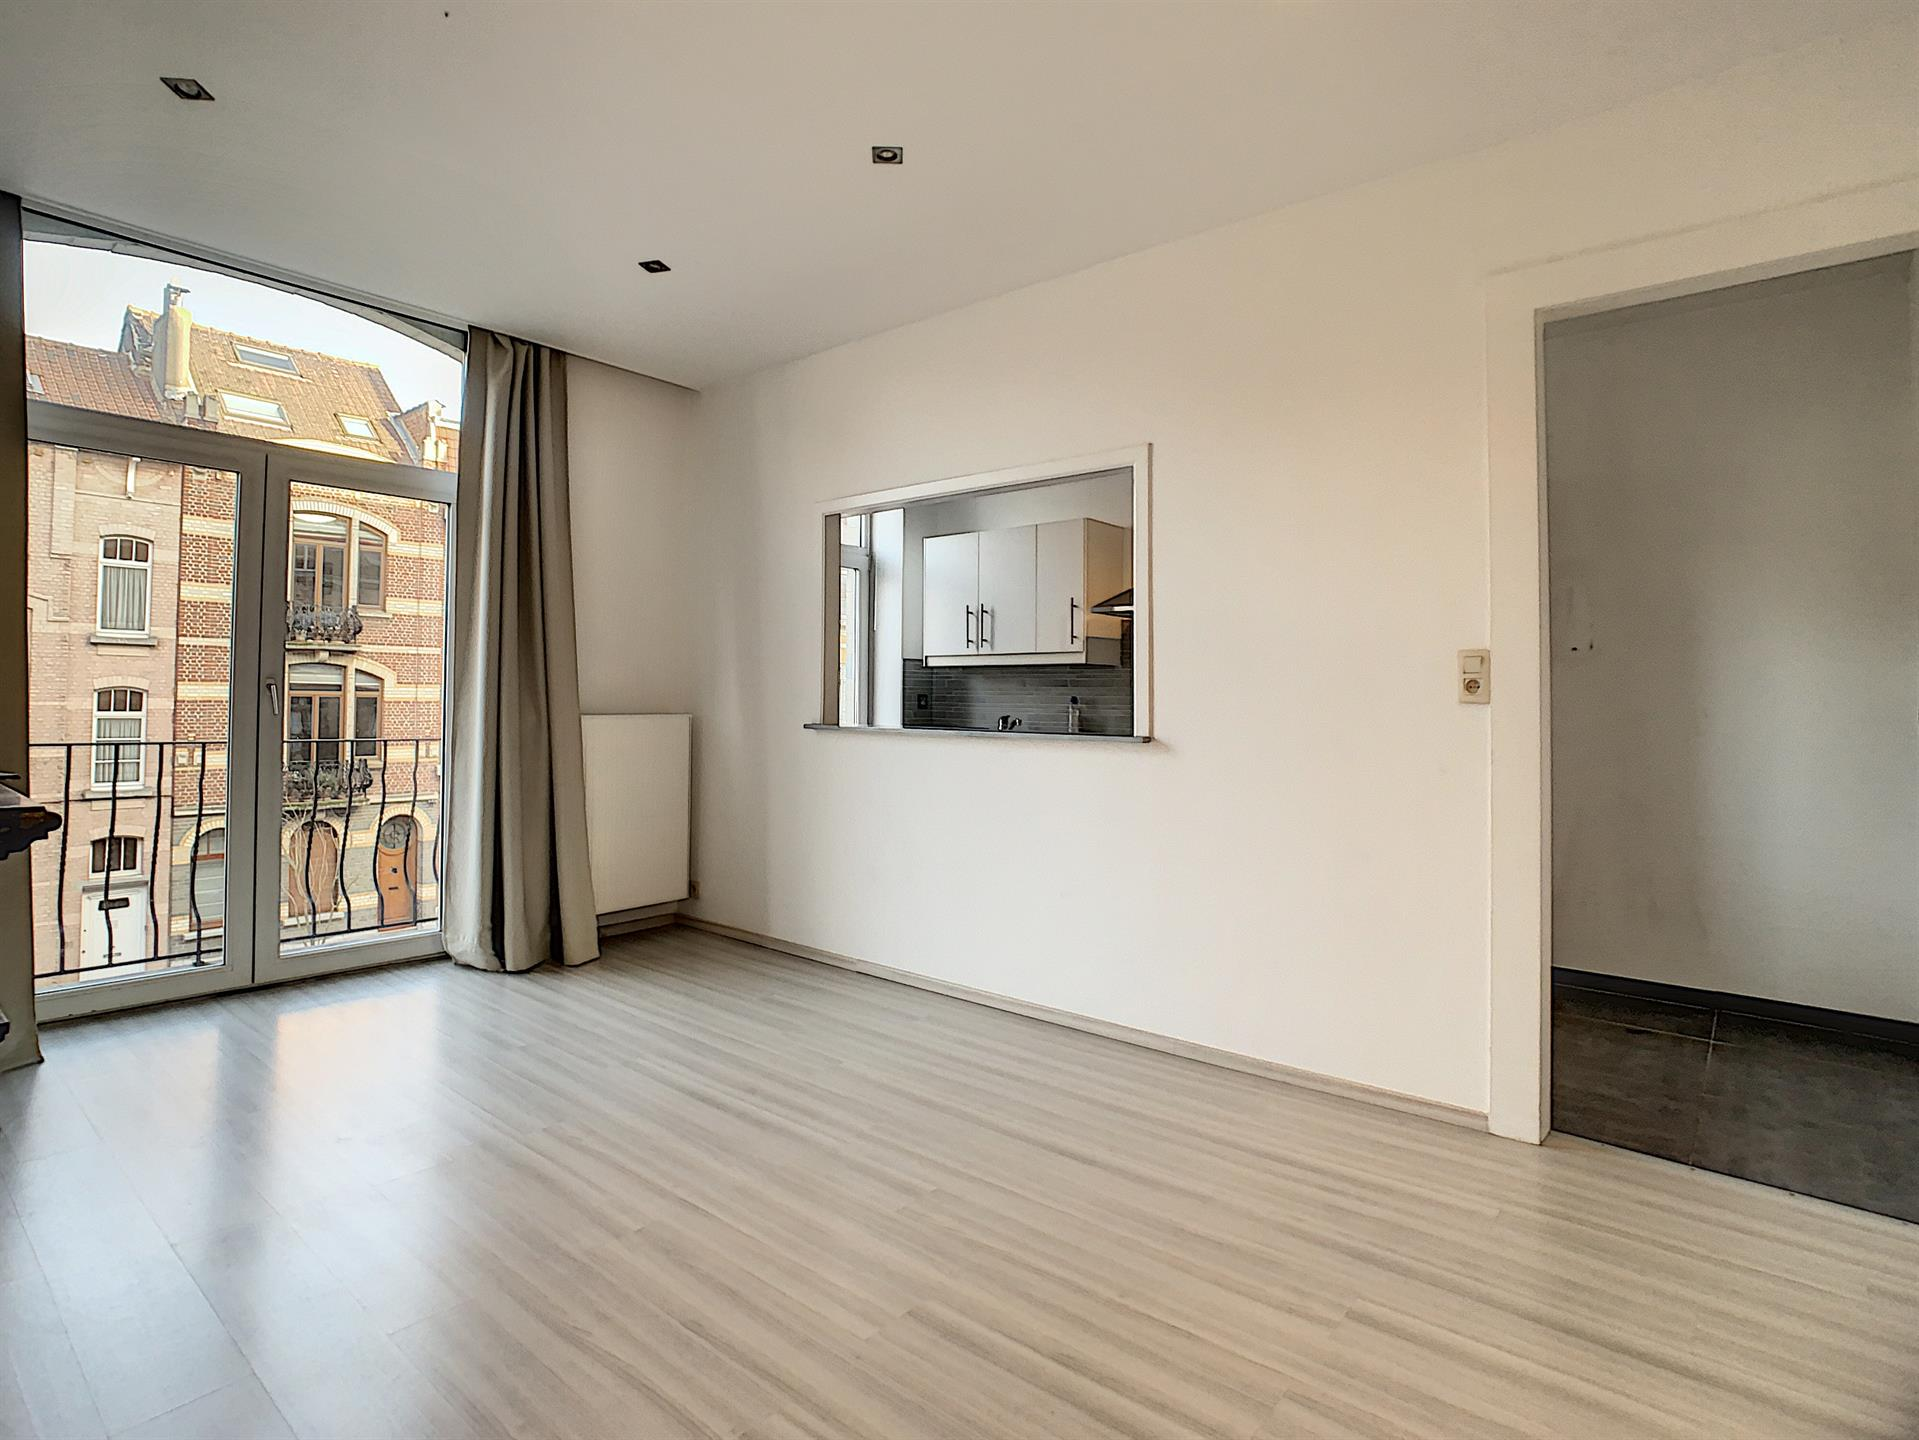 Appartement - Forest - #4242627-4